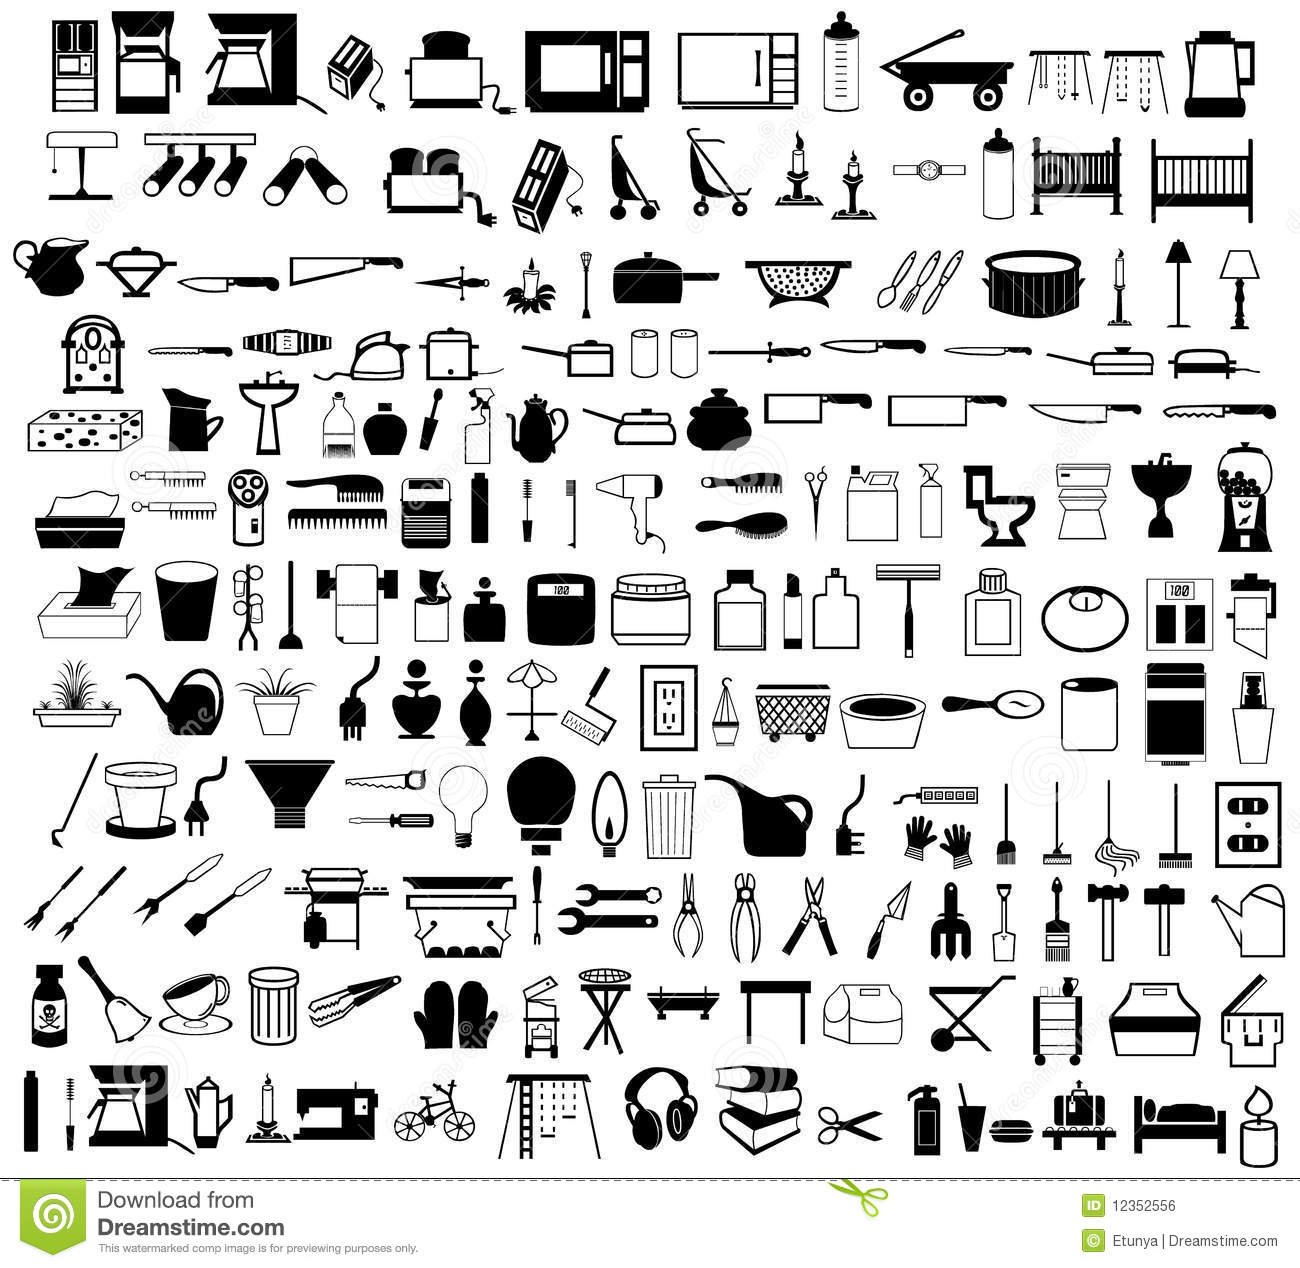 Household Items Set Royalty Free Stock Image Image 12352556